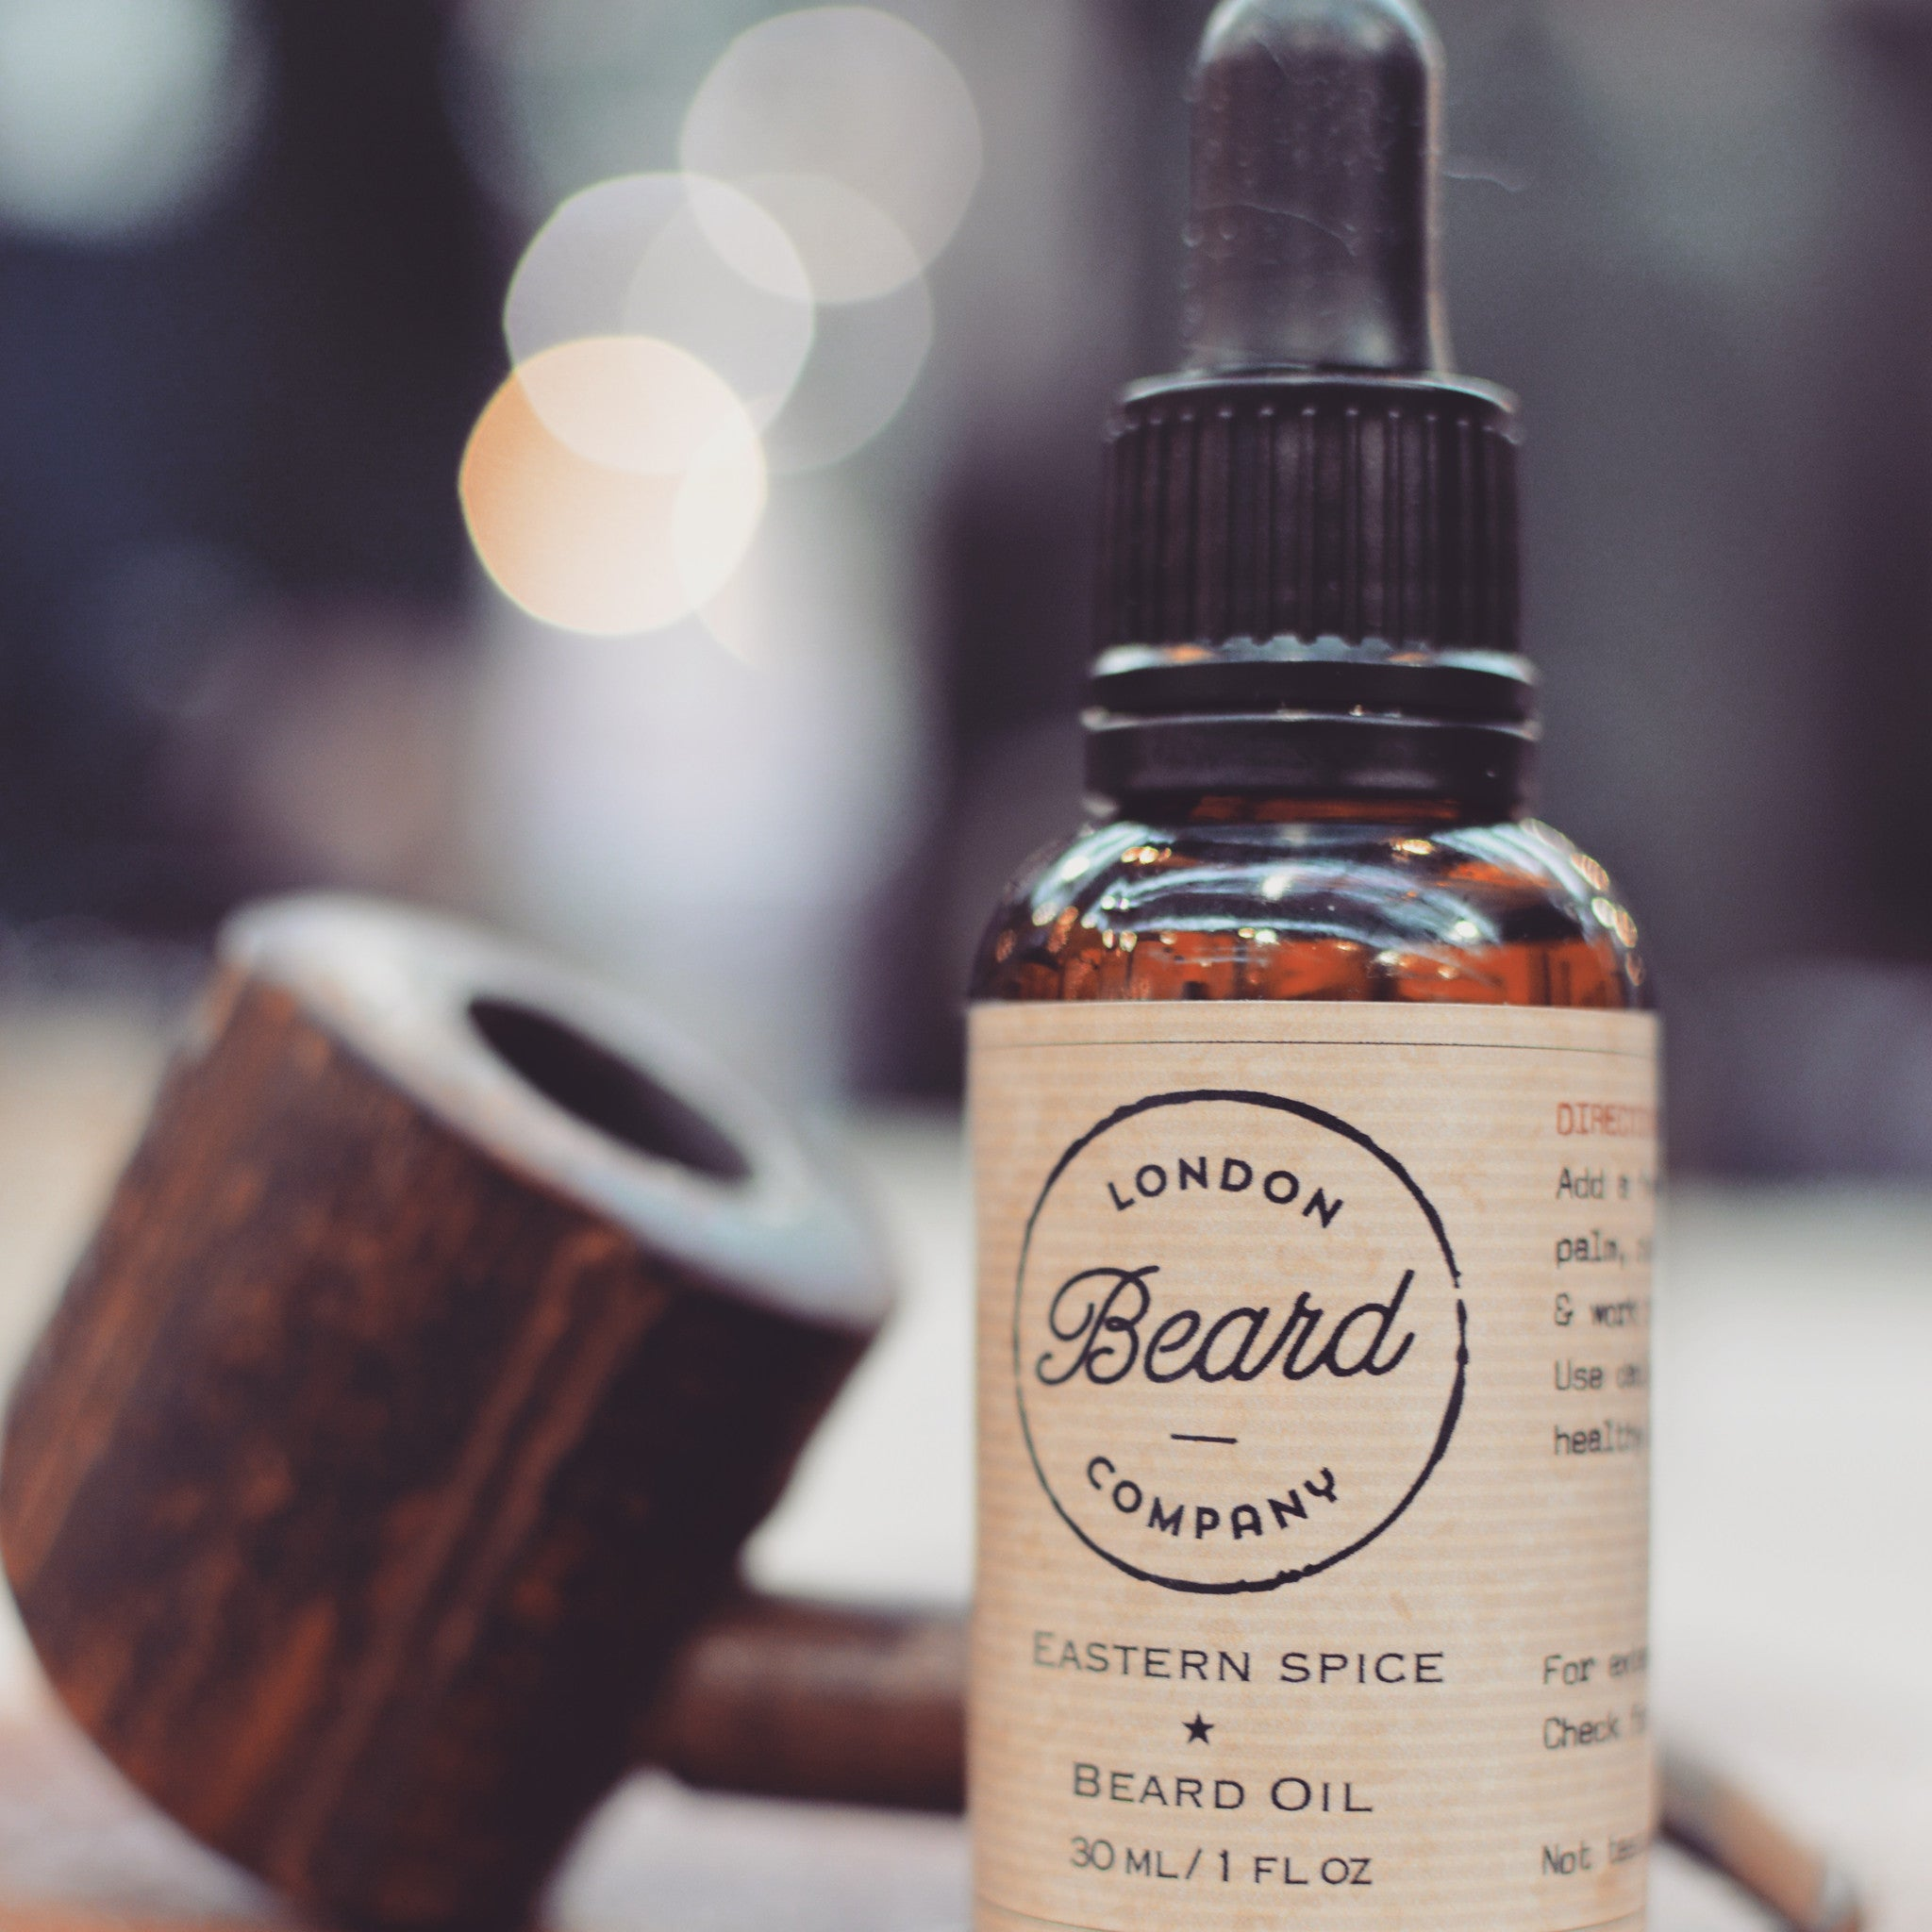 Eastern Spice Beard Oil   London Beard Company   1 ...